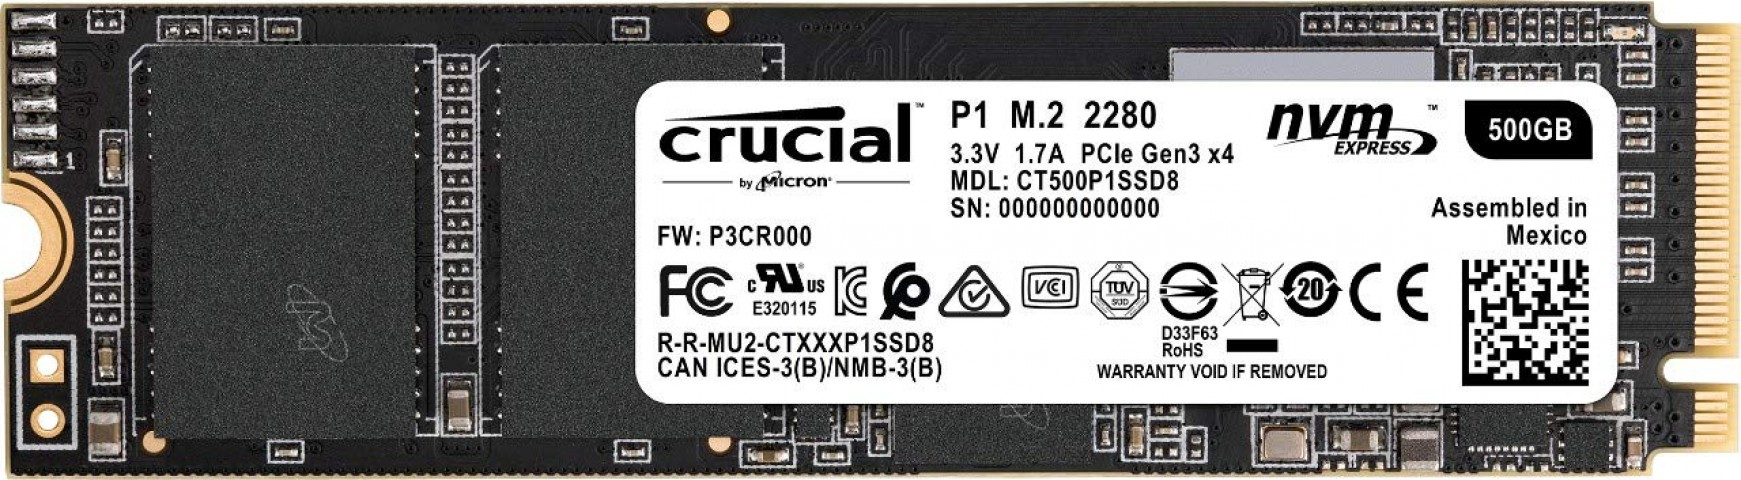 Image of the Crucial CT500P1SSD8 NVMe SSD